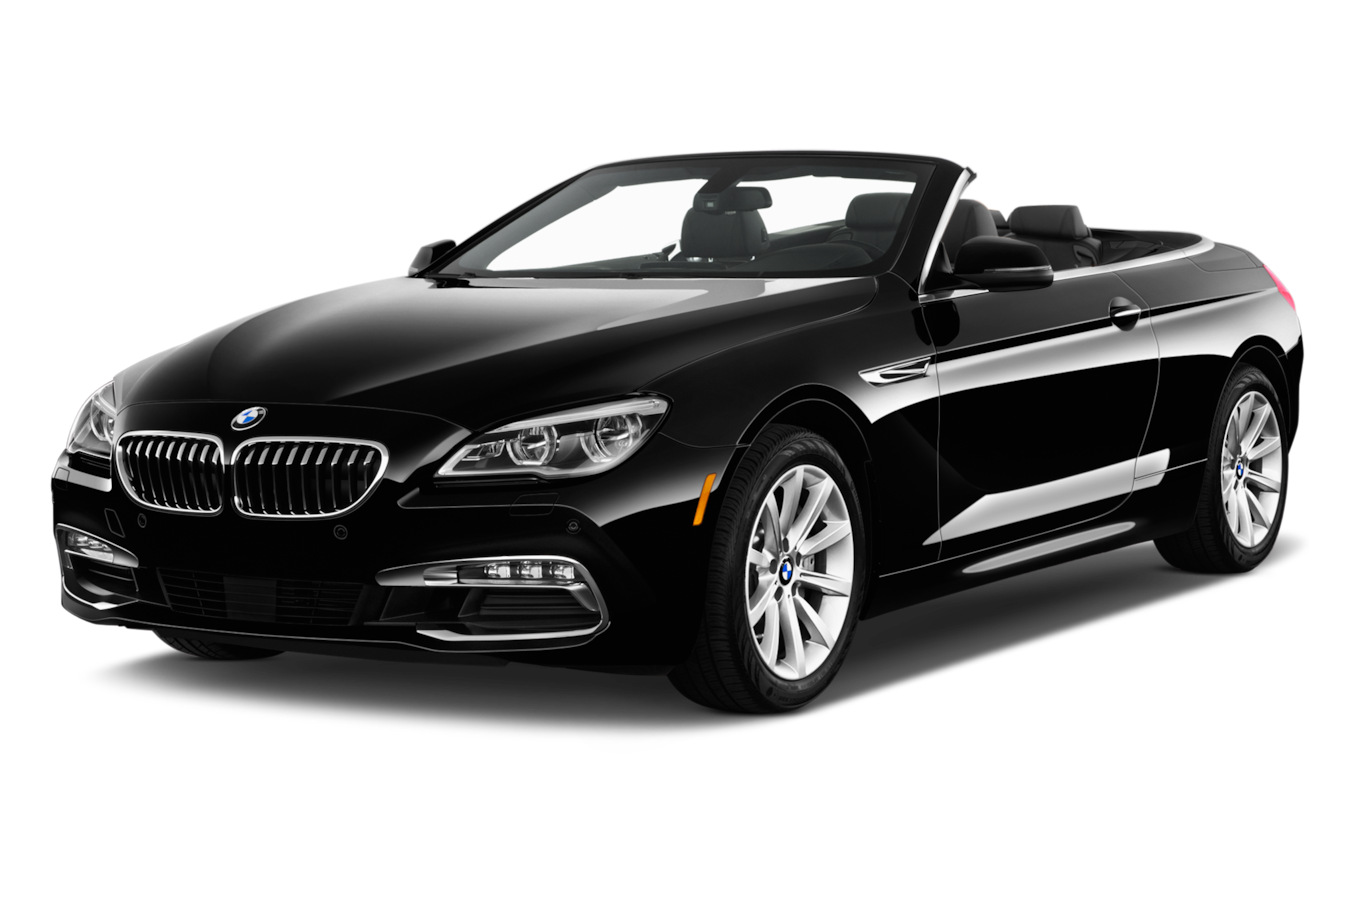 19 A 2020 Bmw 6 Series Convertible Price Design And Review